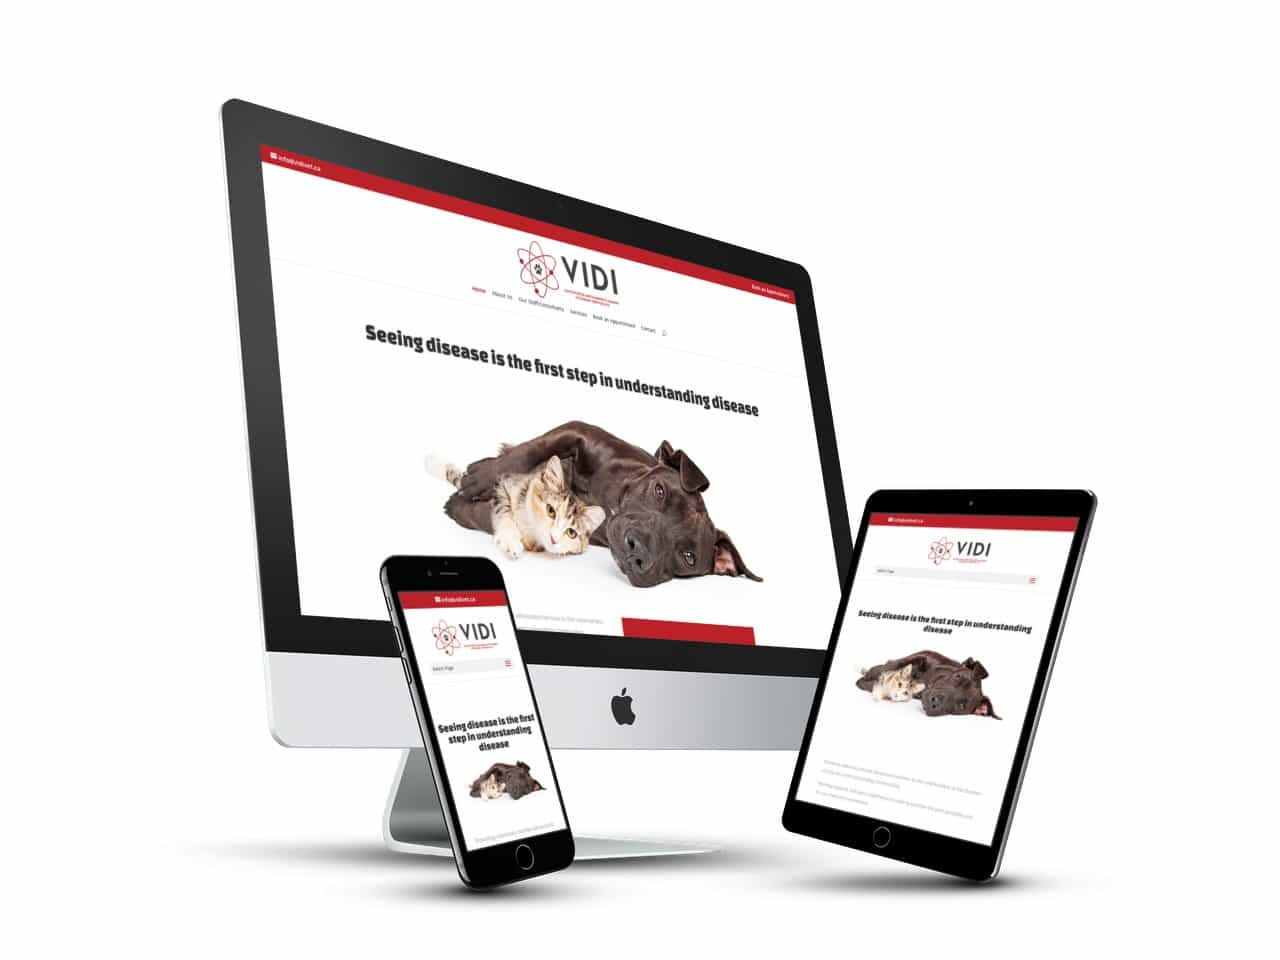 Branding, Print Design, Website Design, Hosting, Management - VIDI Veterinary Services